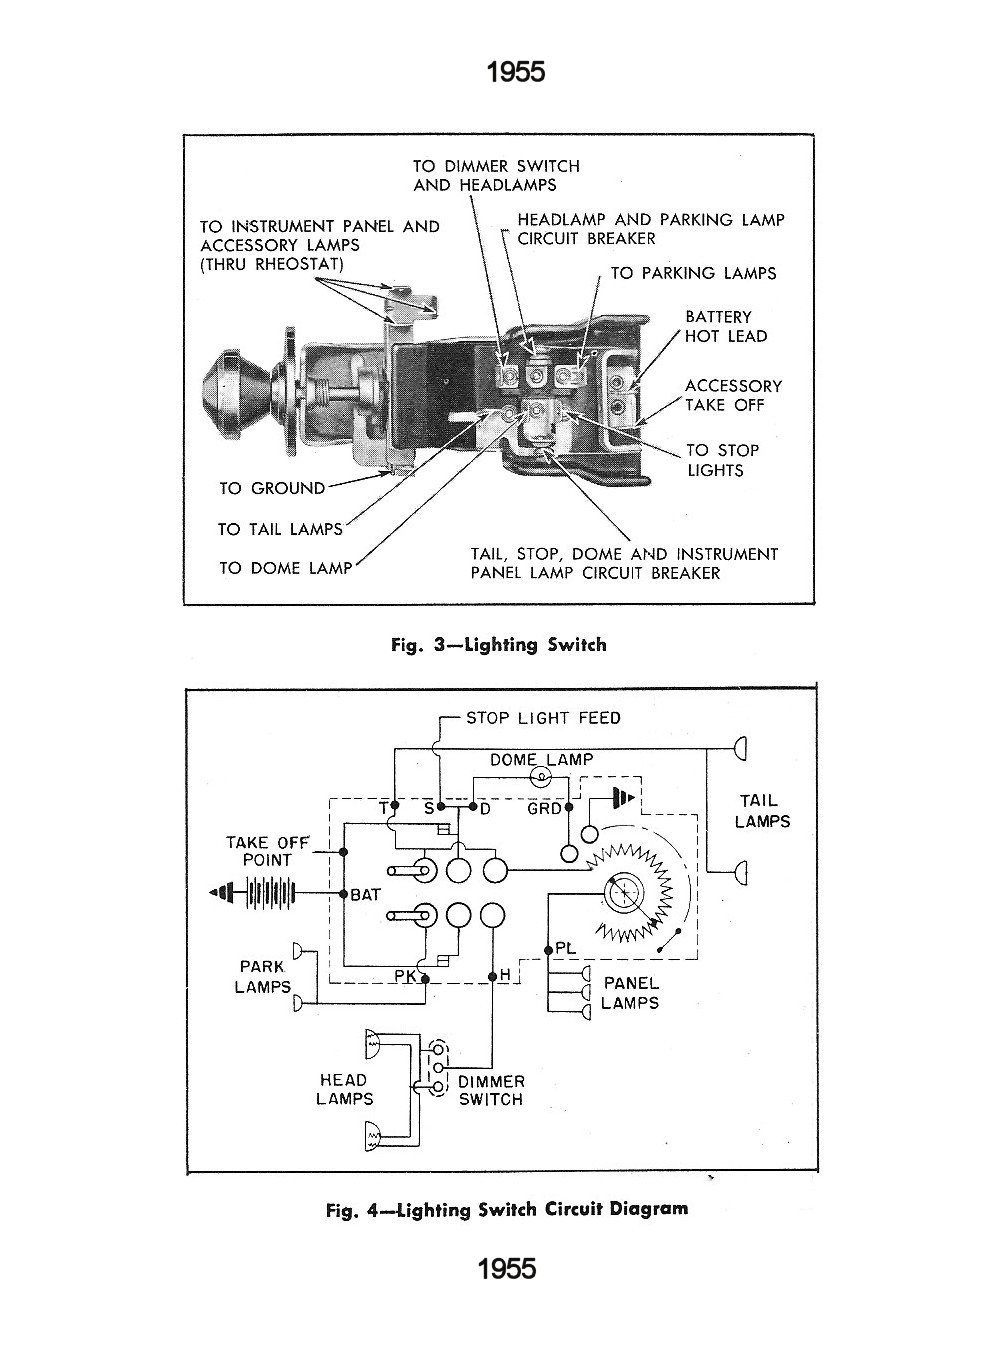 55csm1204a 1955 chevy wiring diagram 1955 pontiac wiring diagram \u2022 free  at pacquiaovsvargaslive.co